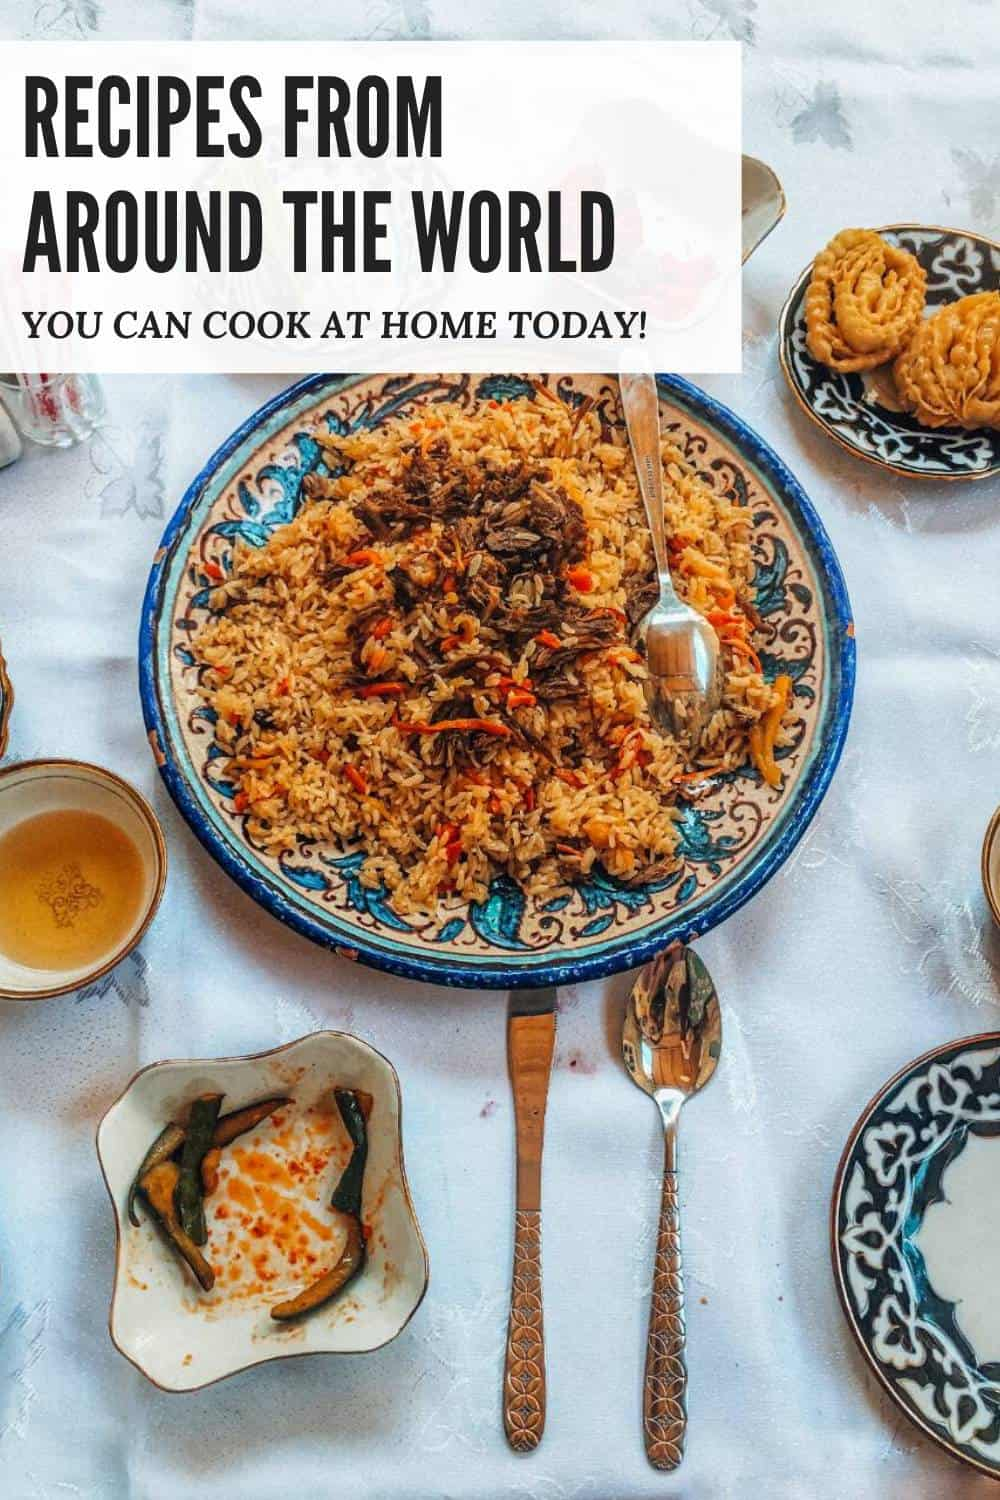 Recipes from around the world you will want to try today!